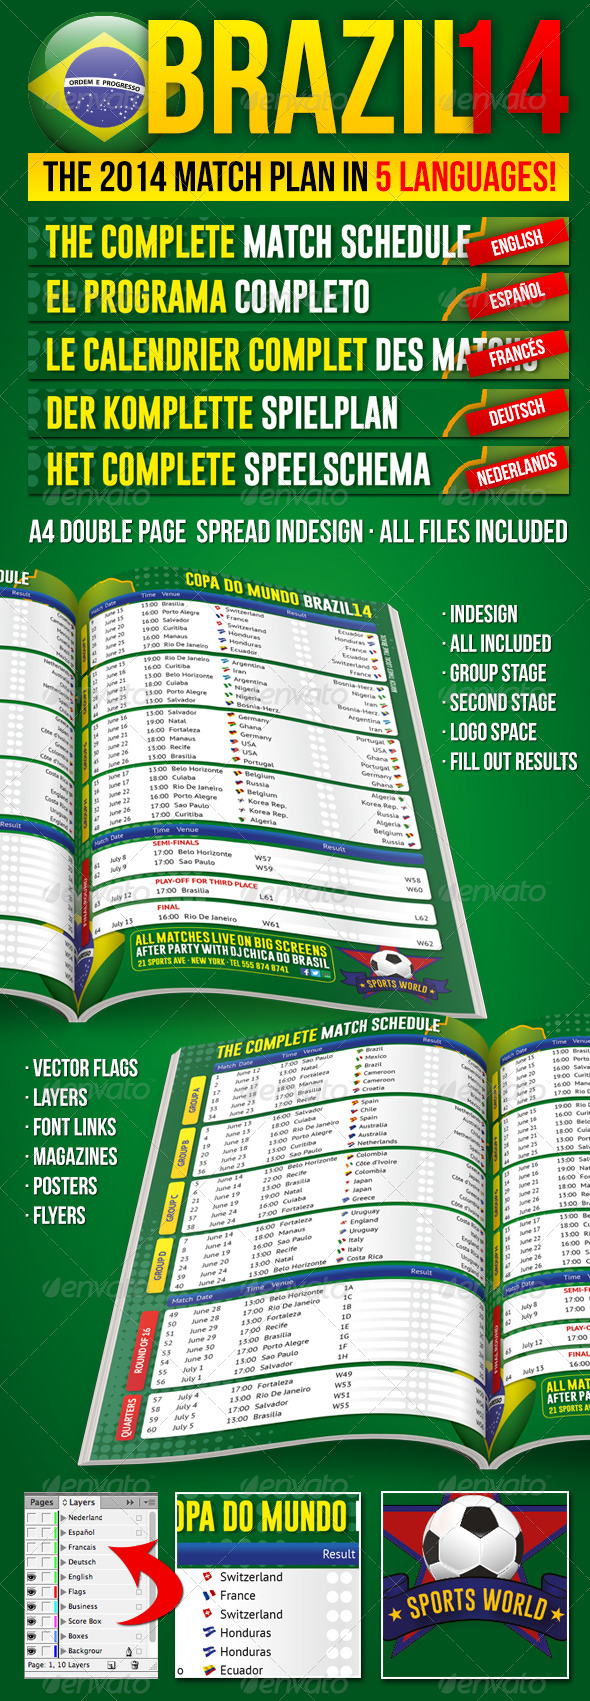 GraphicRiver Brazil14 Match Schedule in 5 languages 6492486